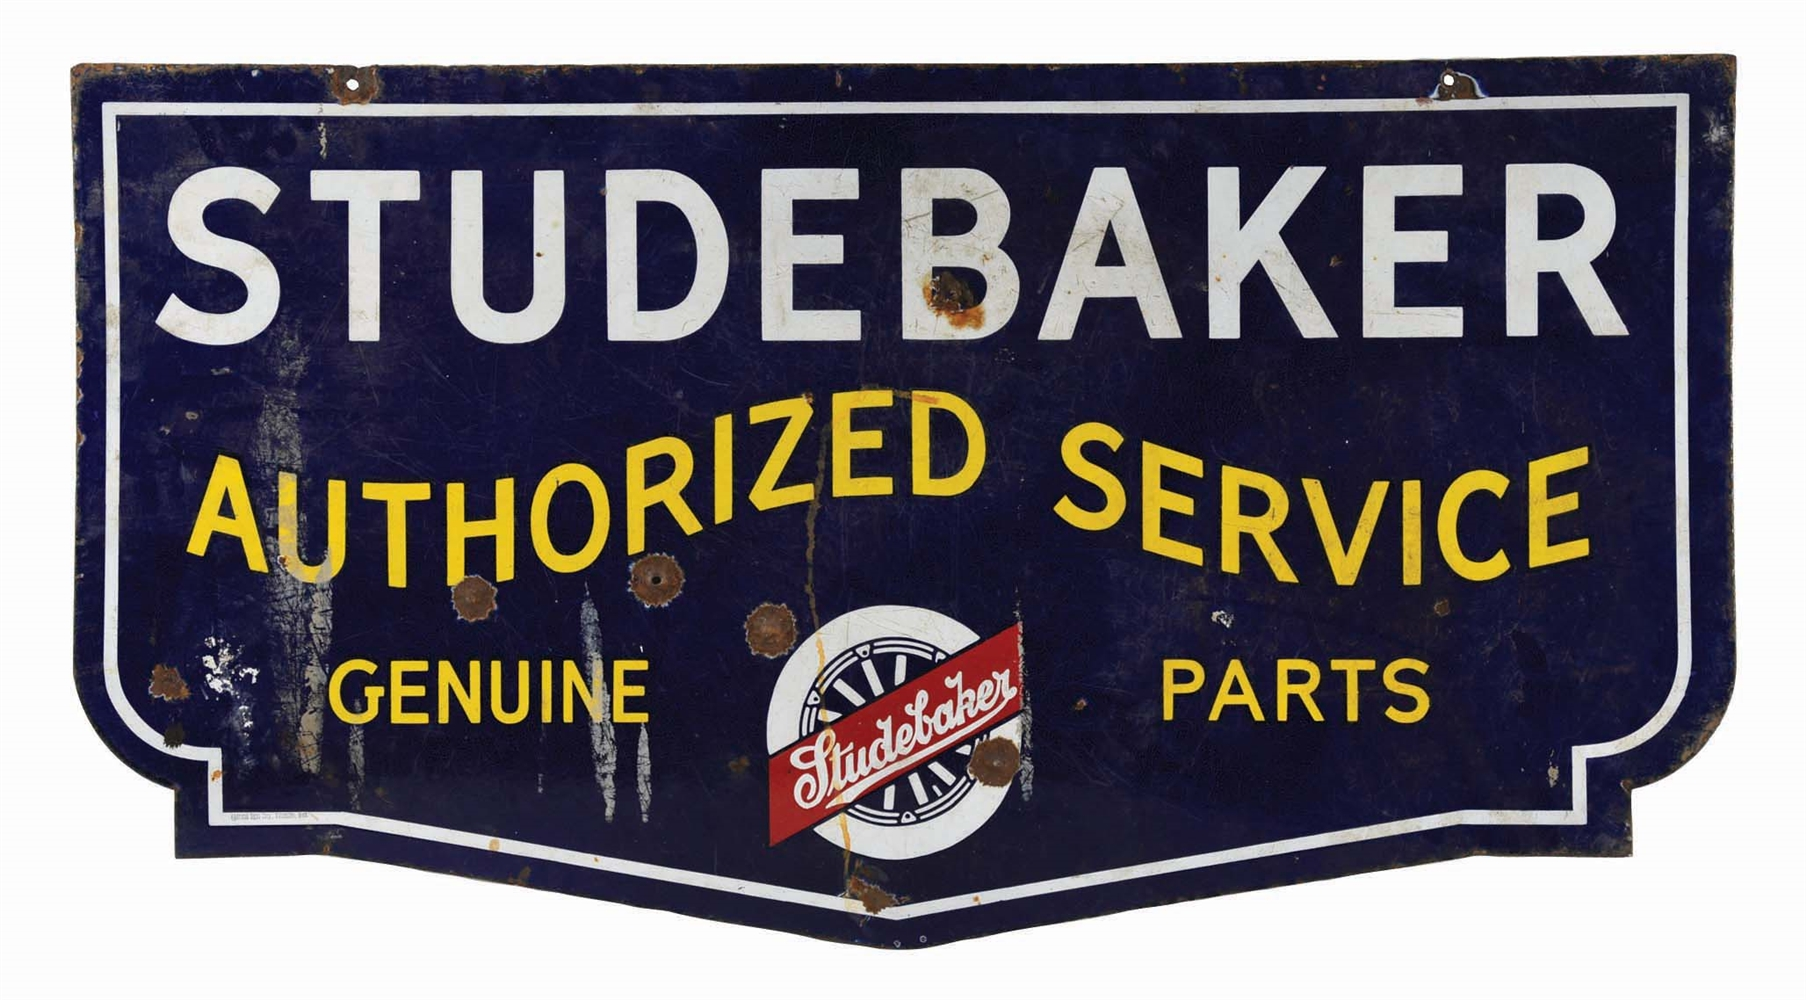 STUDEBAKER AUTHORIZED SERVICE & GENUINE PARTS PORCELAIN SIGN.